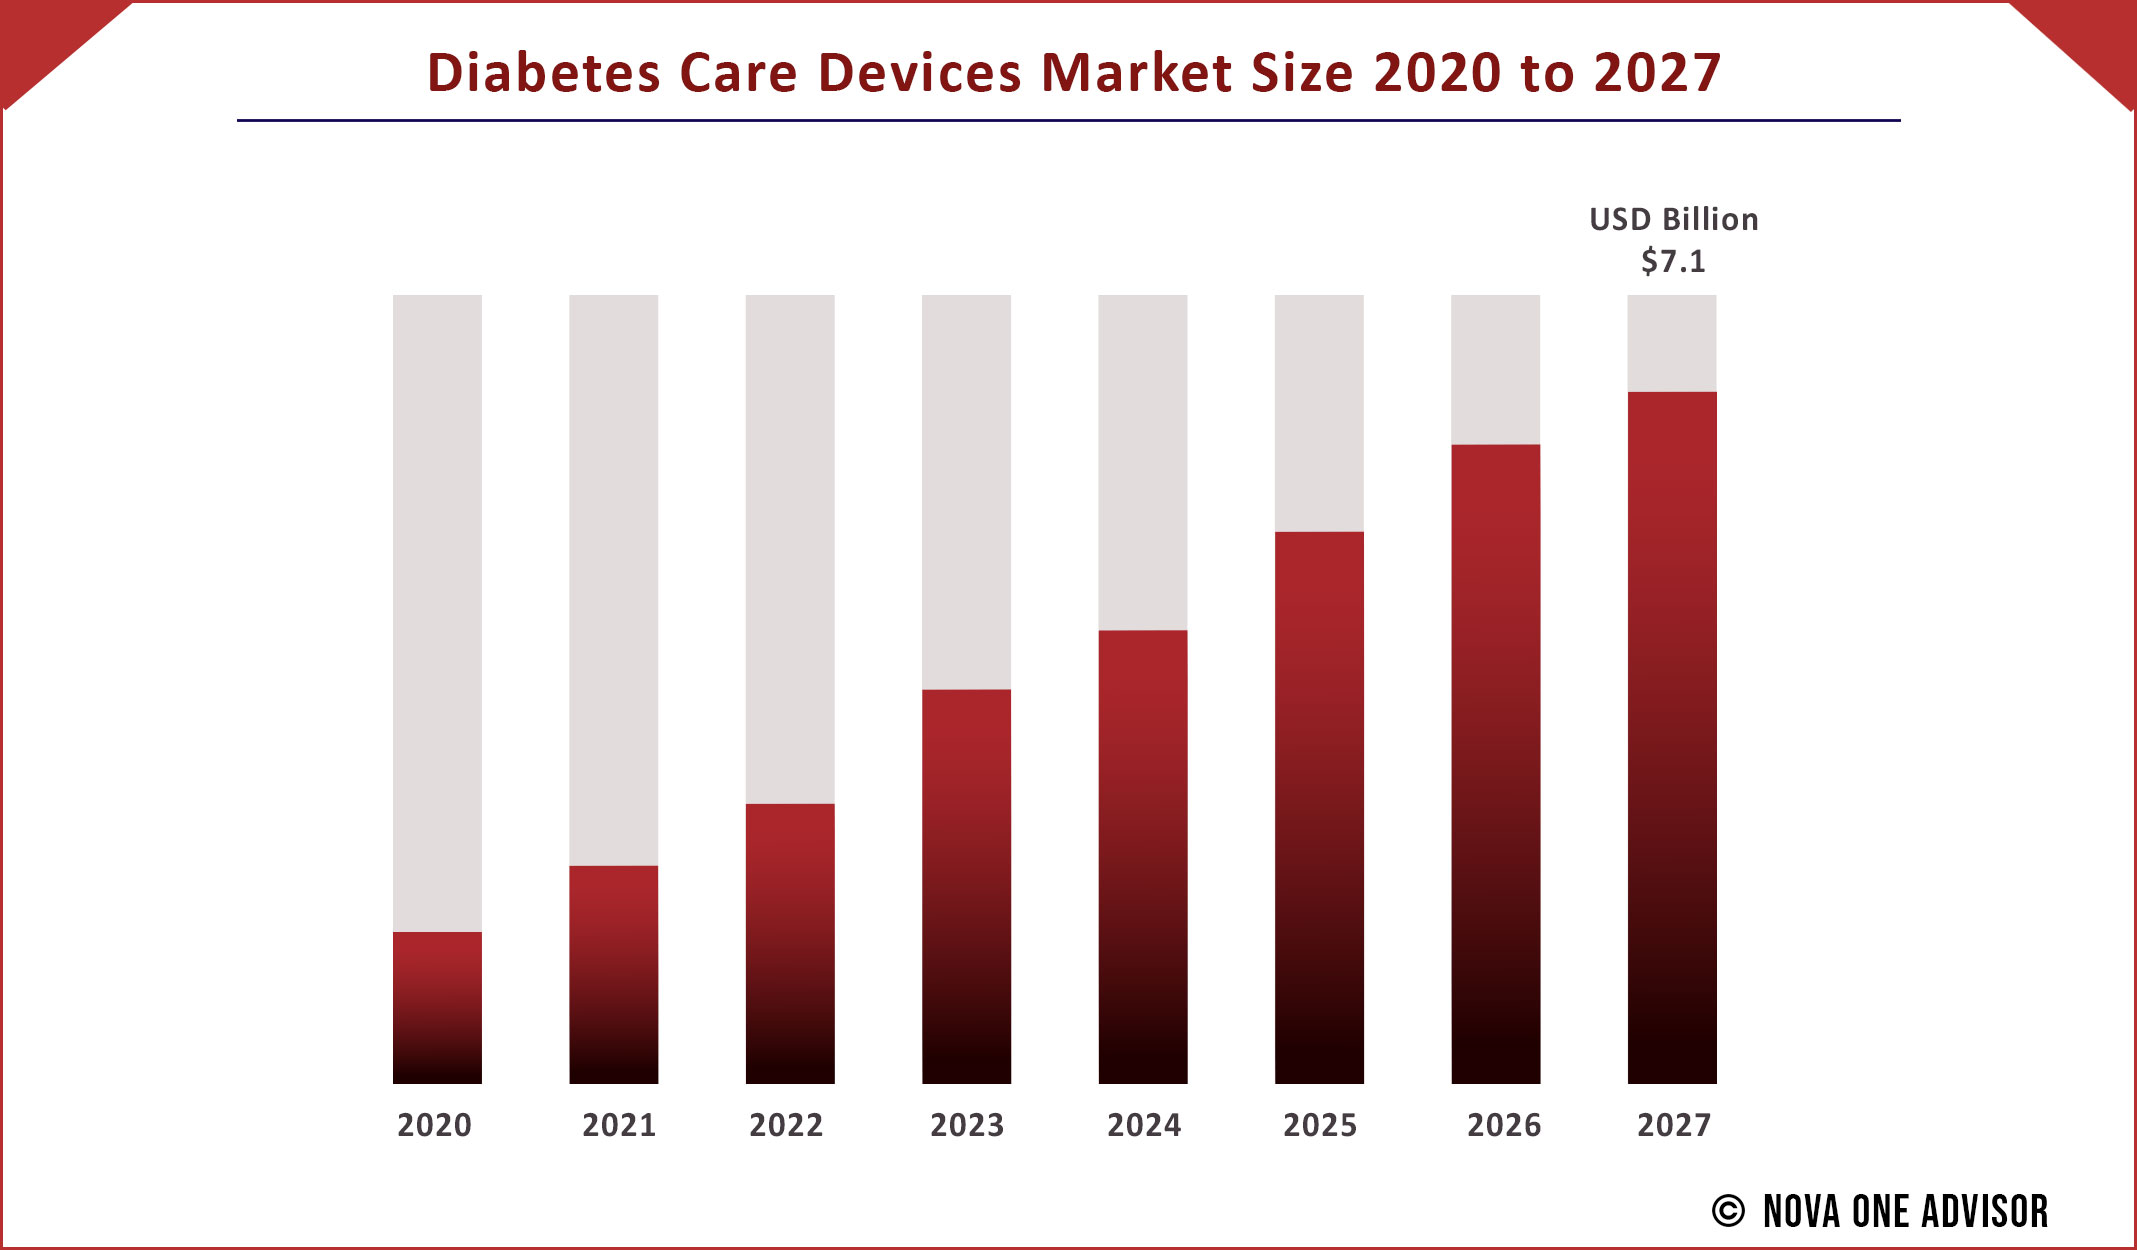 Diabetes Care Devices Market Size 2020 to 2027